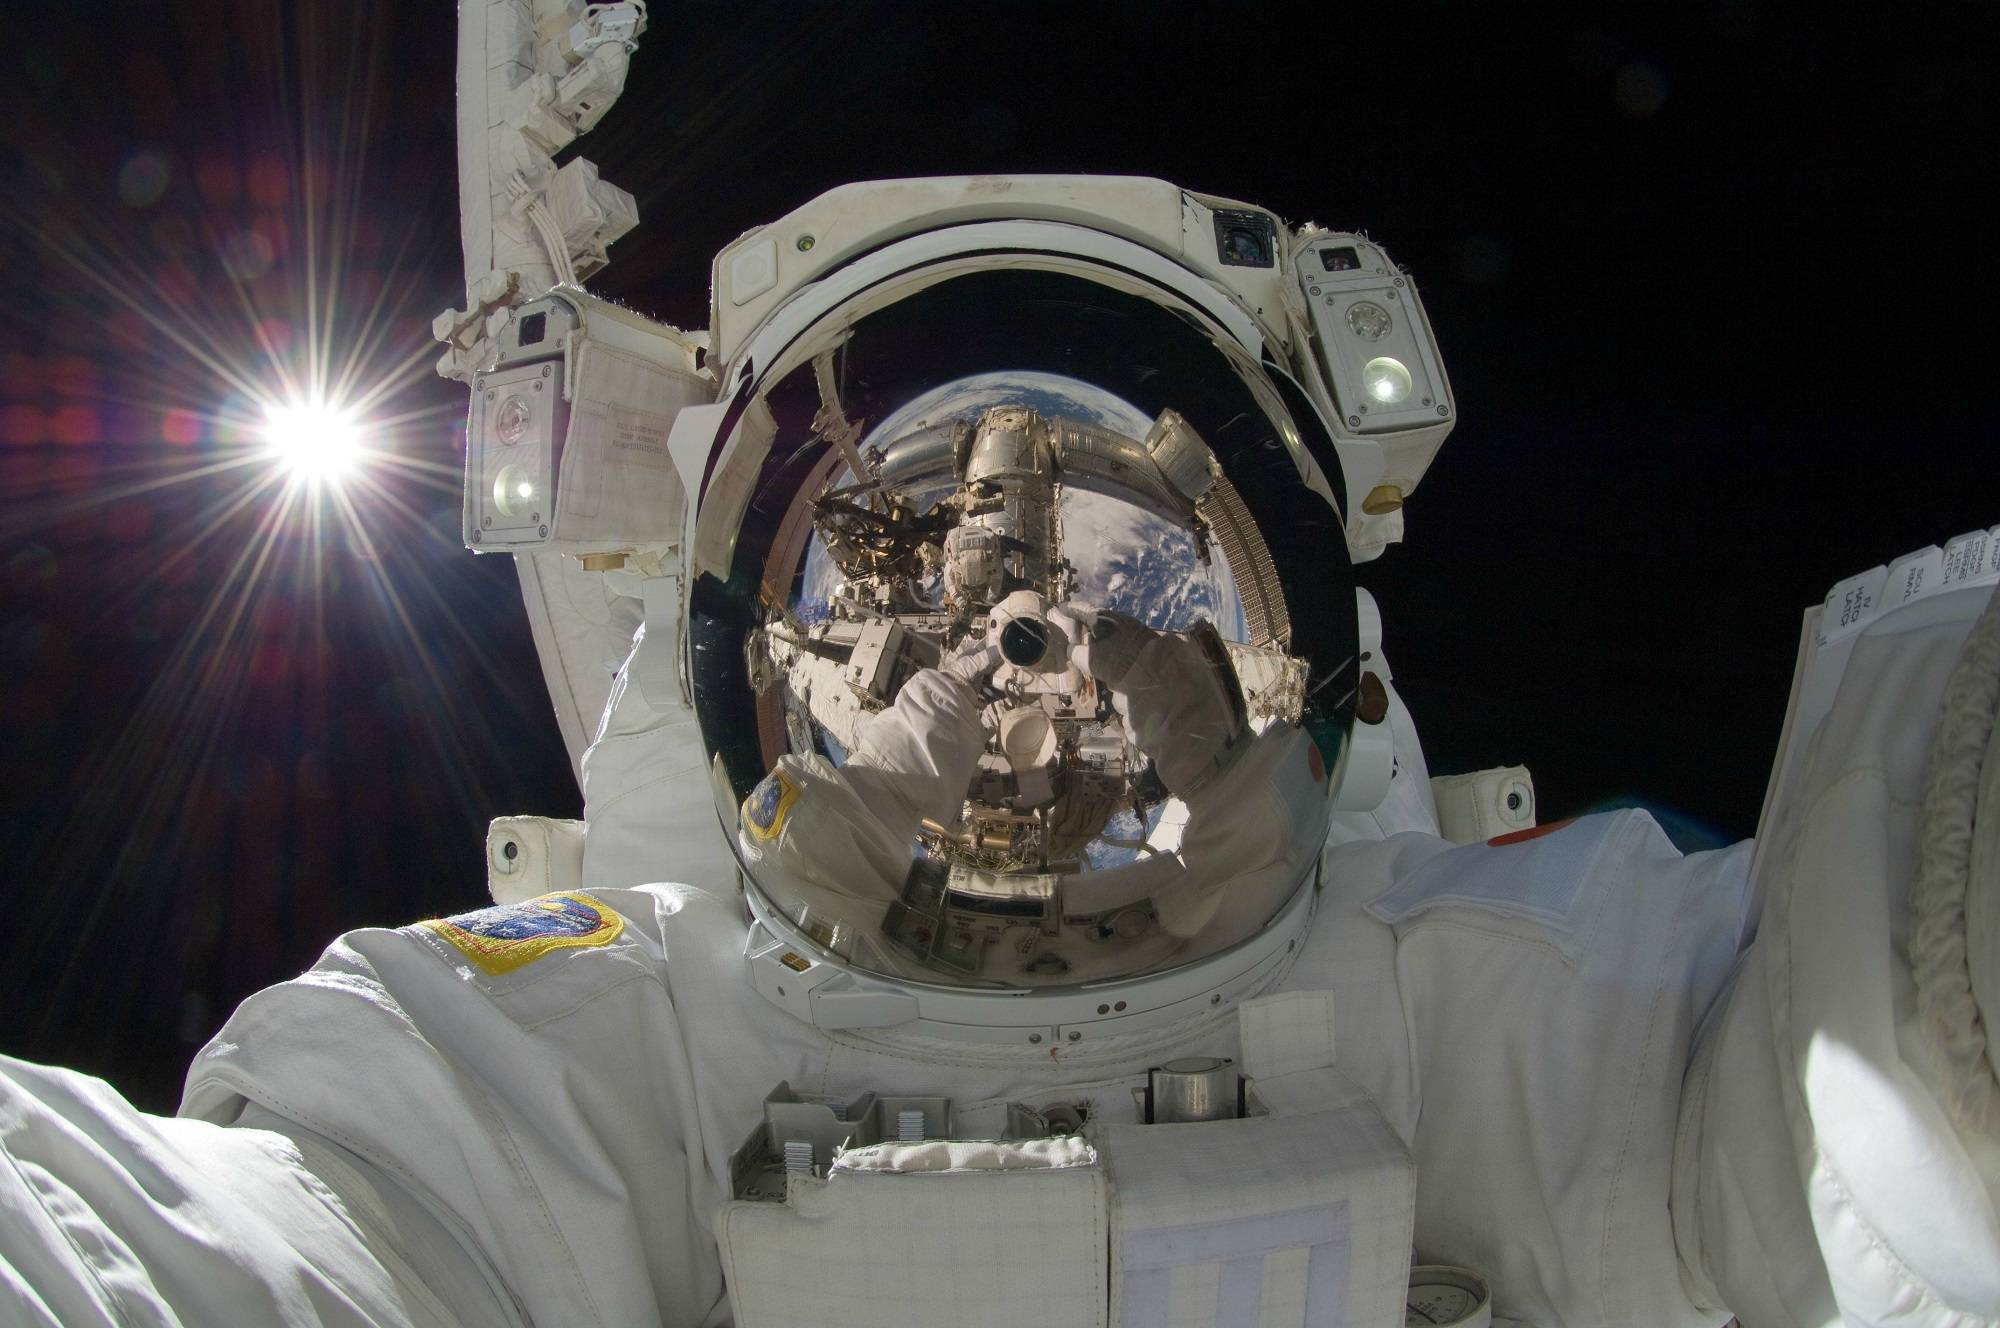 astronaut taking photos in space